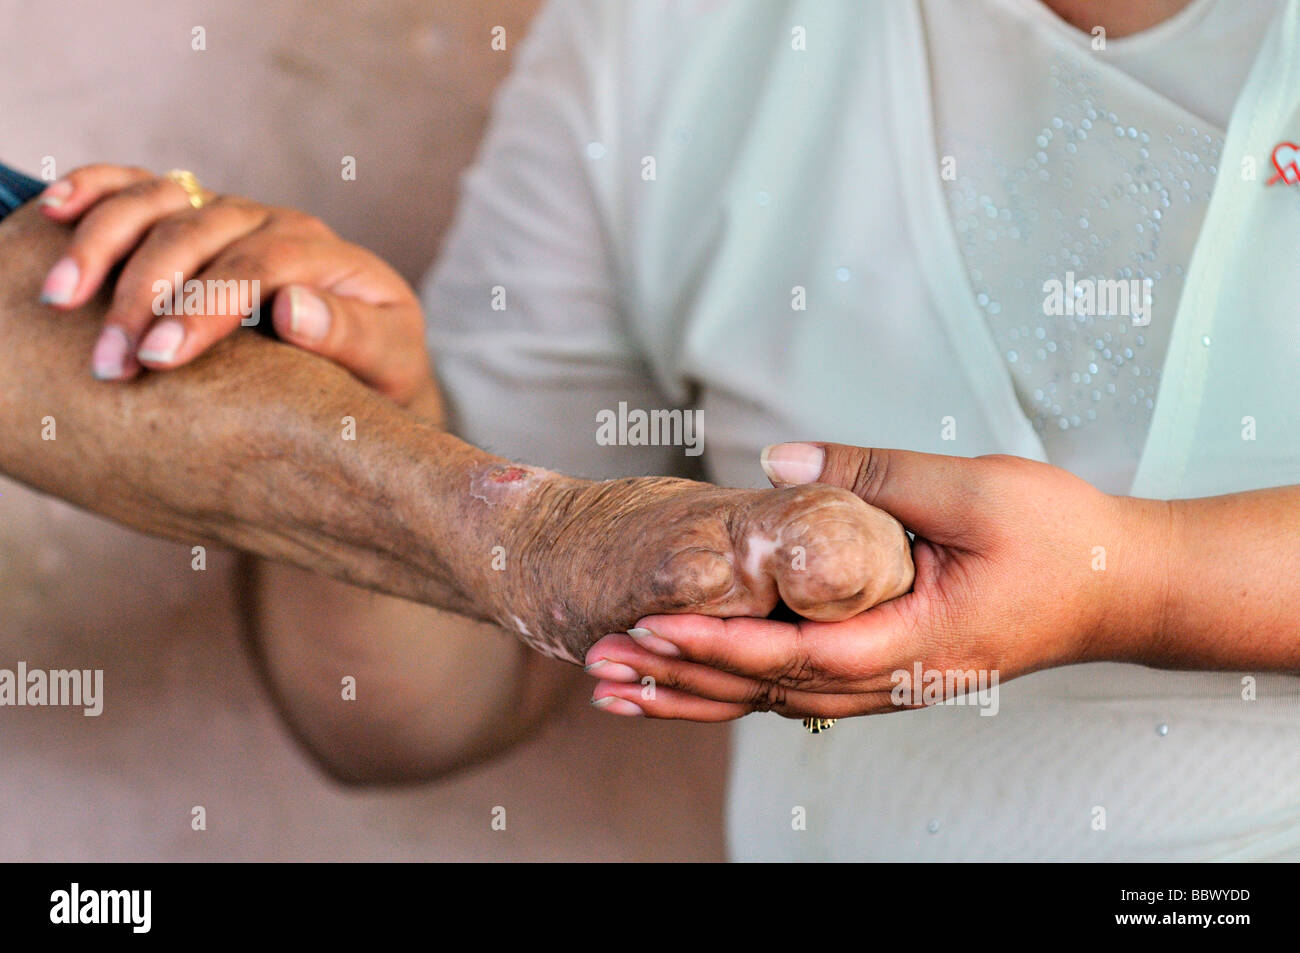 Nurse holding the hands of a leprosy patient, leprosy colony Agua de Dios, Colombia, South America - Stock Image